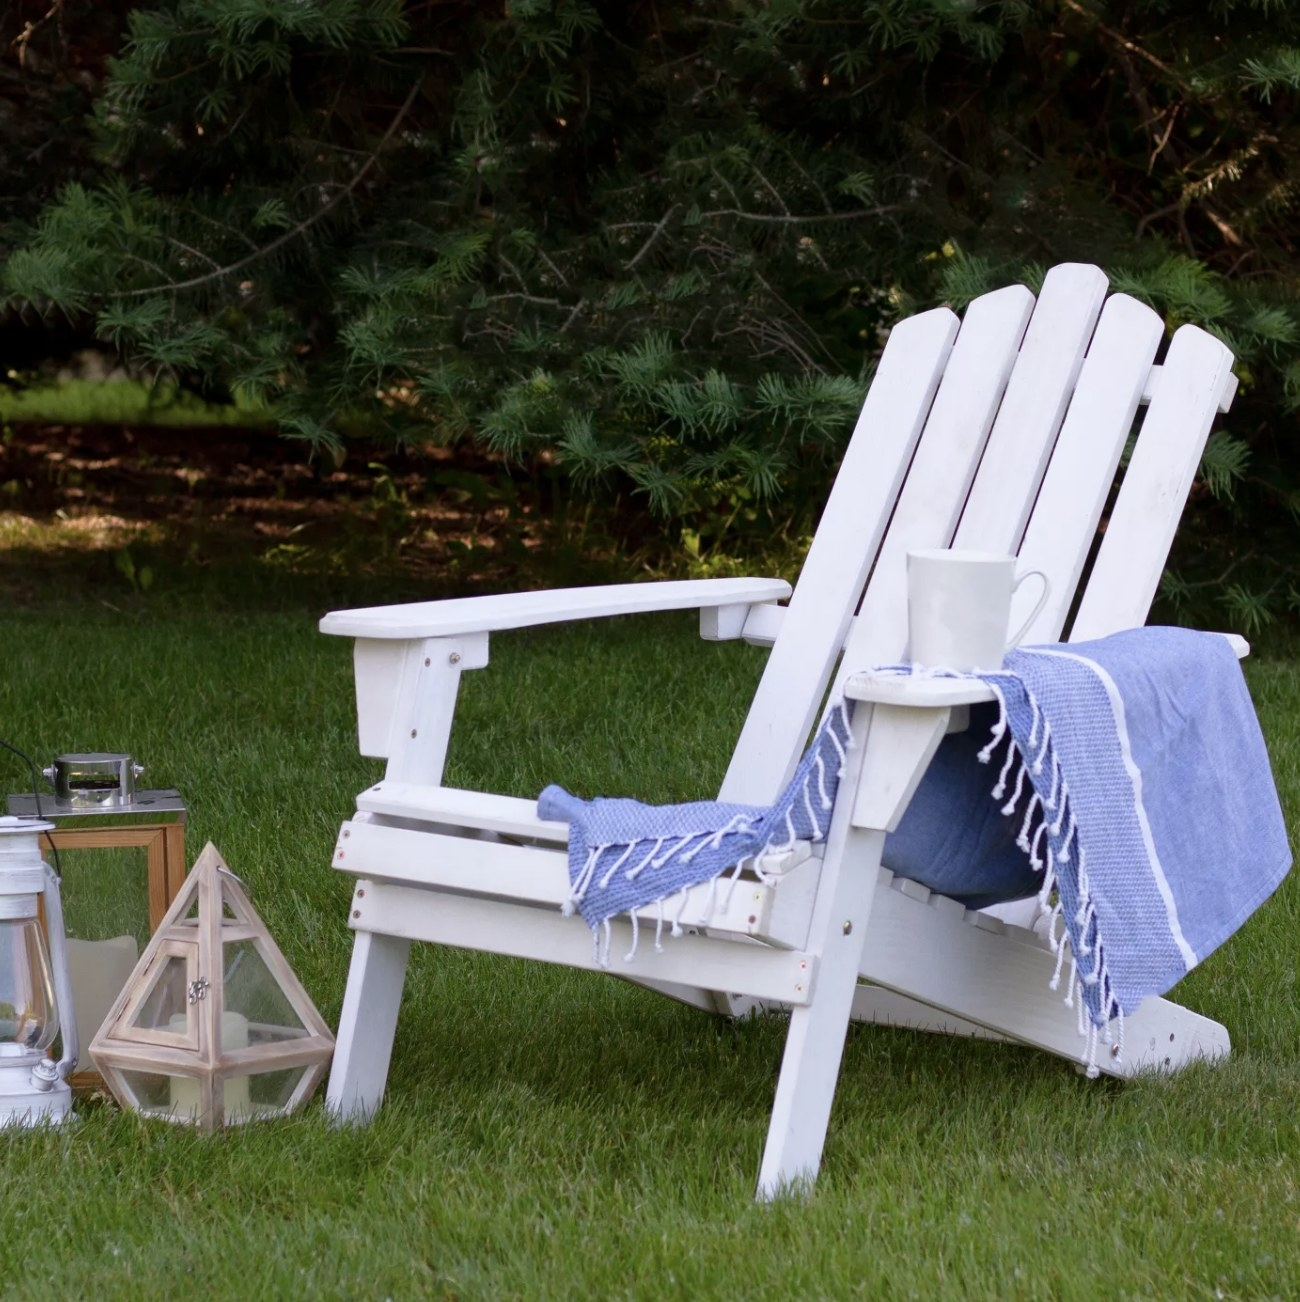 A white Adirondack chair